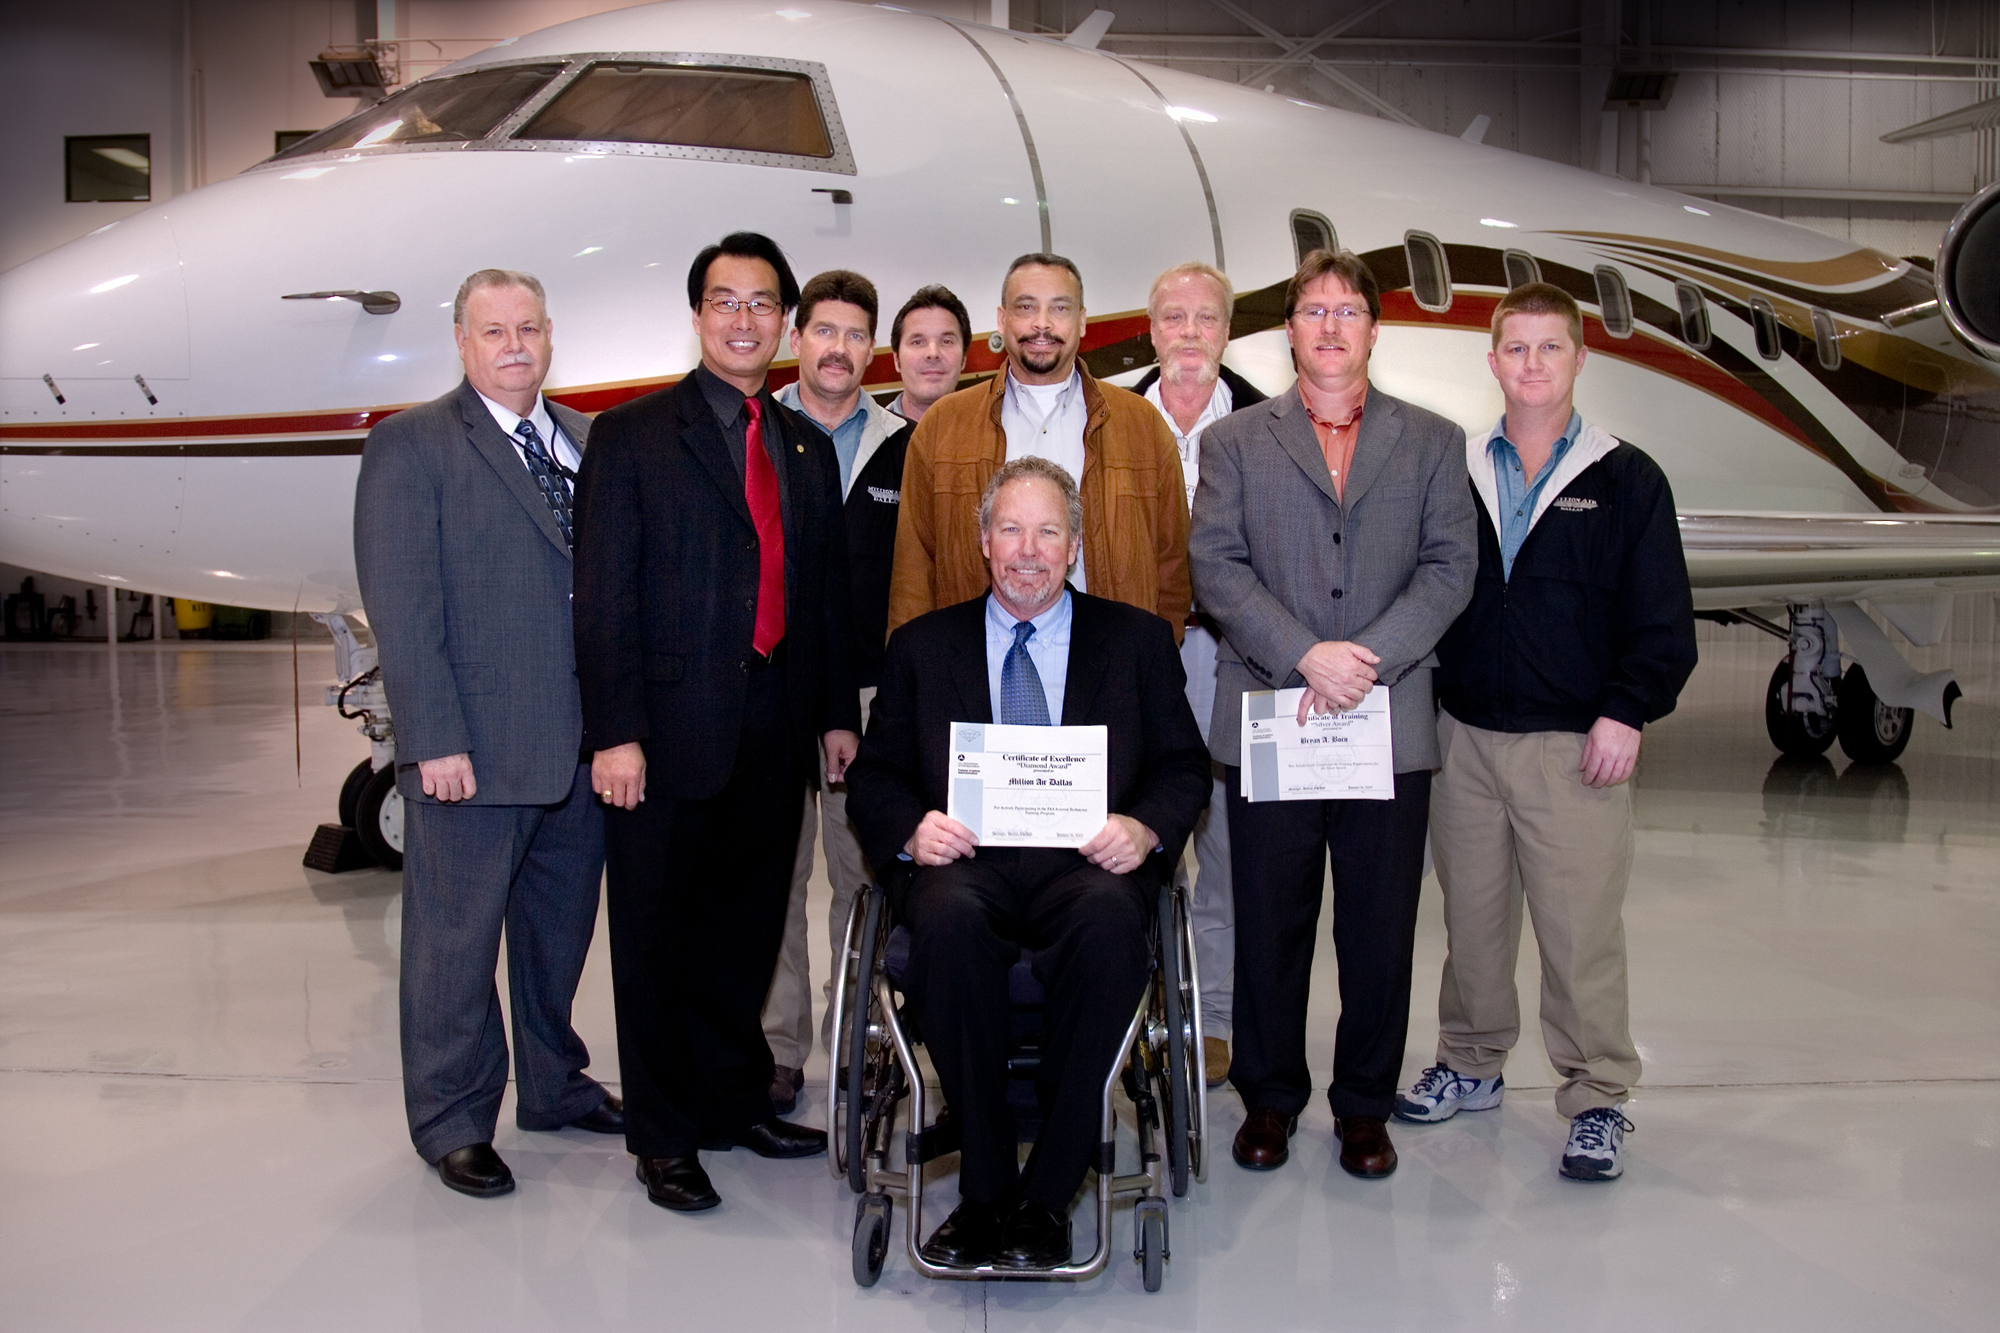 Million Air Dallas Receives Prestigious FAA Diamond Award